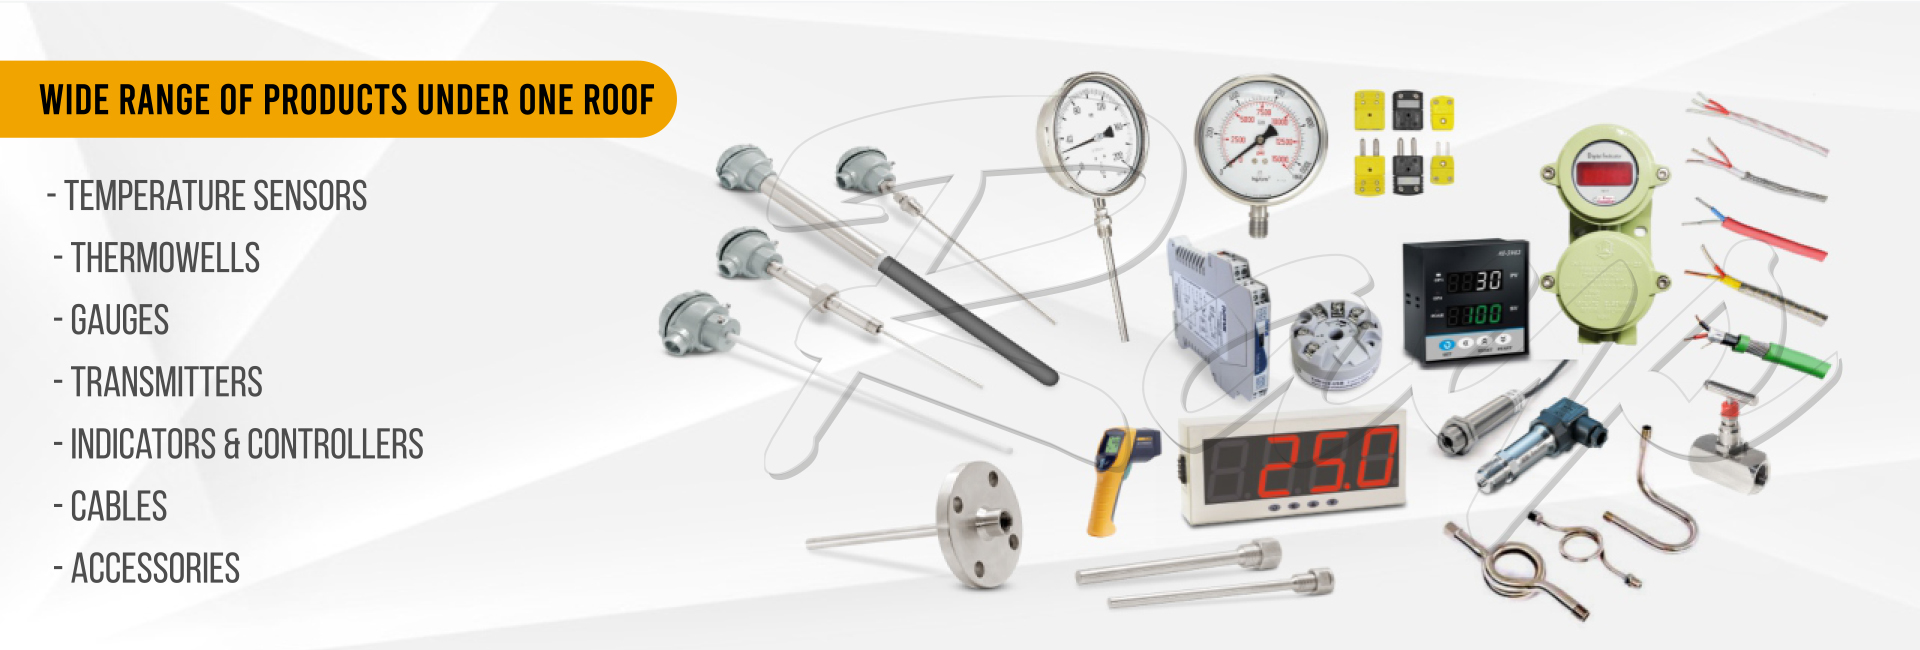 Temperature Sensor, Thermowell, Gauges, Transmitters, Indicator & Controllers, Cables, Accessories Manufacturer, Supplier and Exporter in Nigeria, South Africa, Egypt, Algeria, Morocco, Angola, Sudan, Kenya, Ethiopia, Tanzania, Tunisia